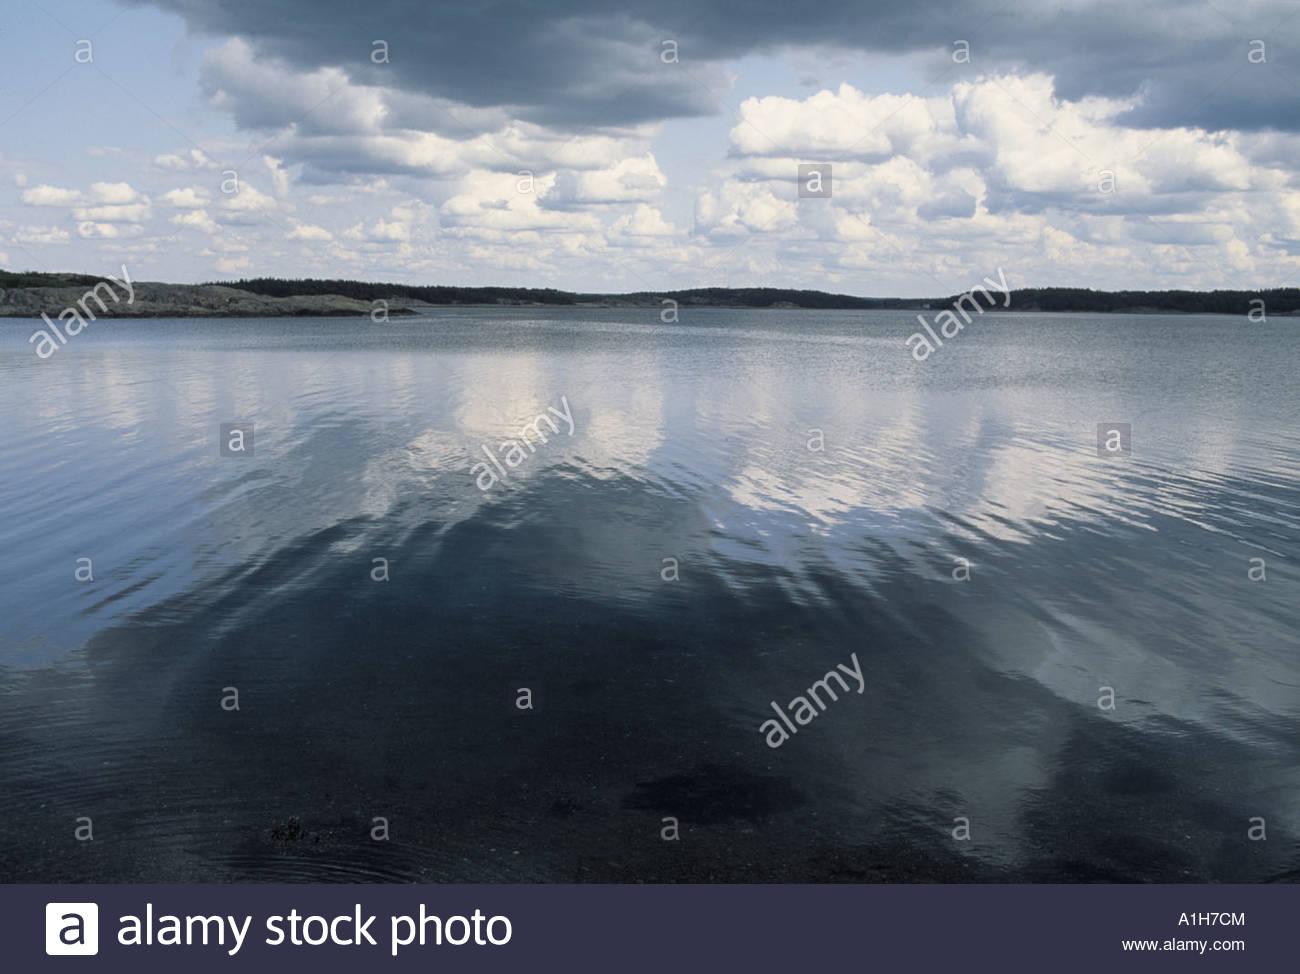 Clouds over the sea. Vastkusten, Sweden - Stock Image